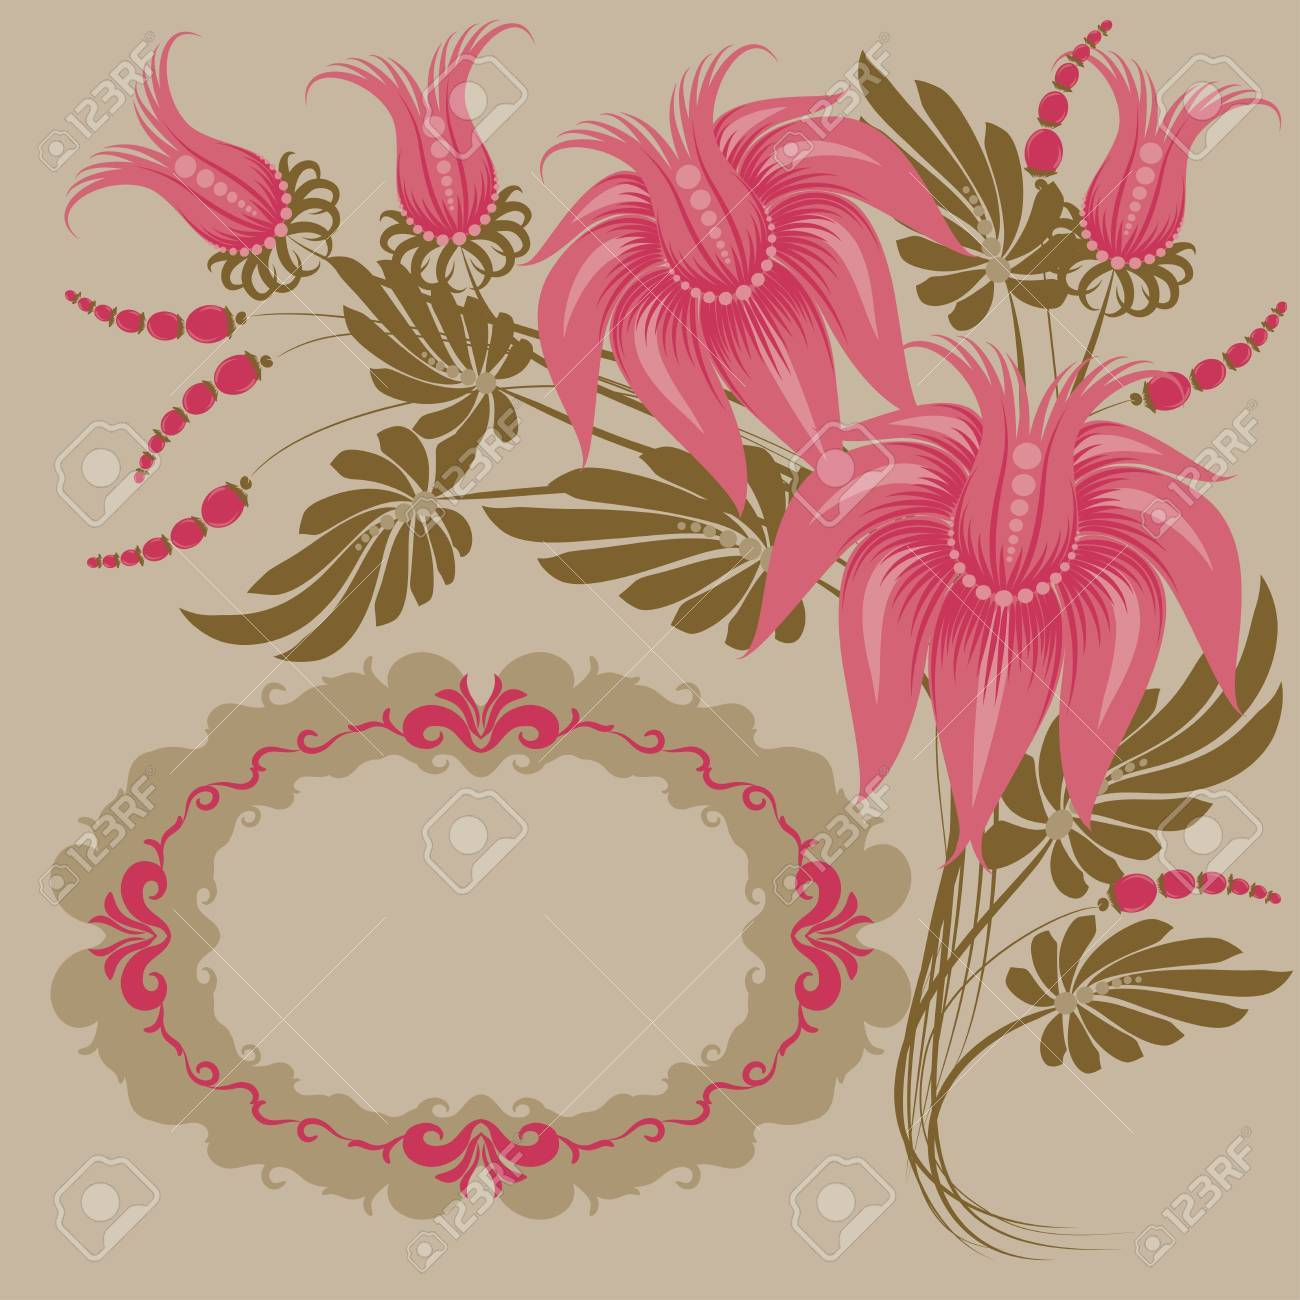 Flowers on a beige background. Floral design. In vintage style. Basic elements are grouped. Stock Vector - 10459289